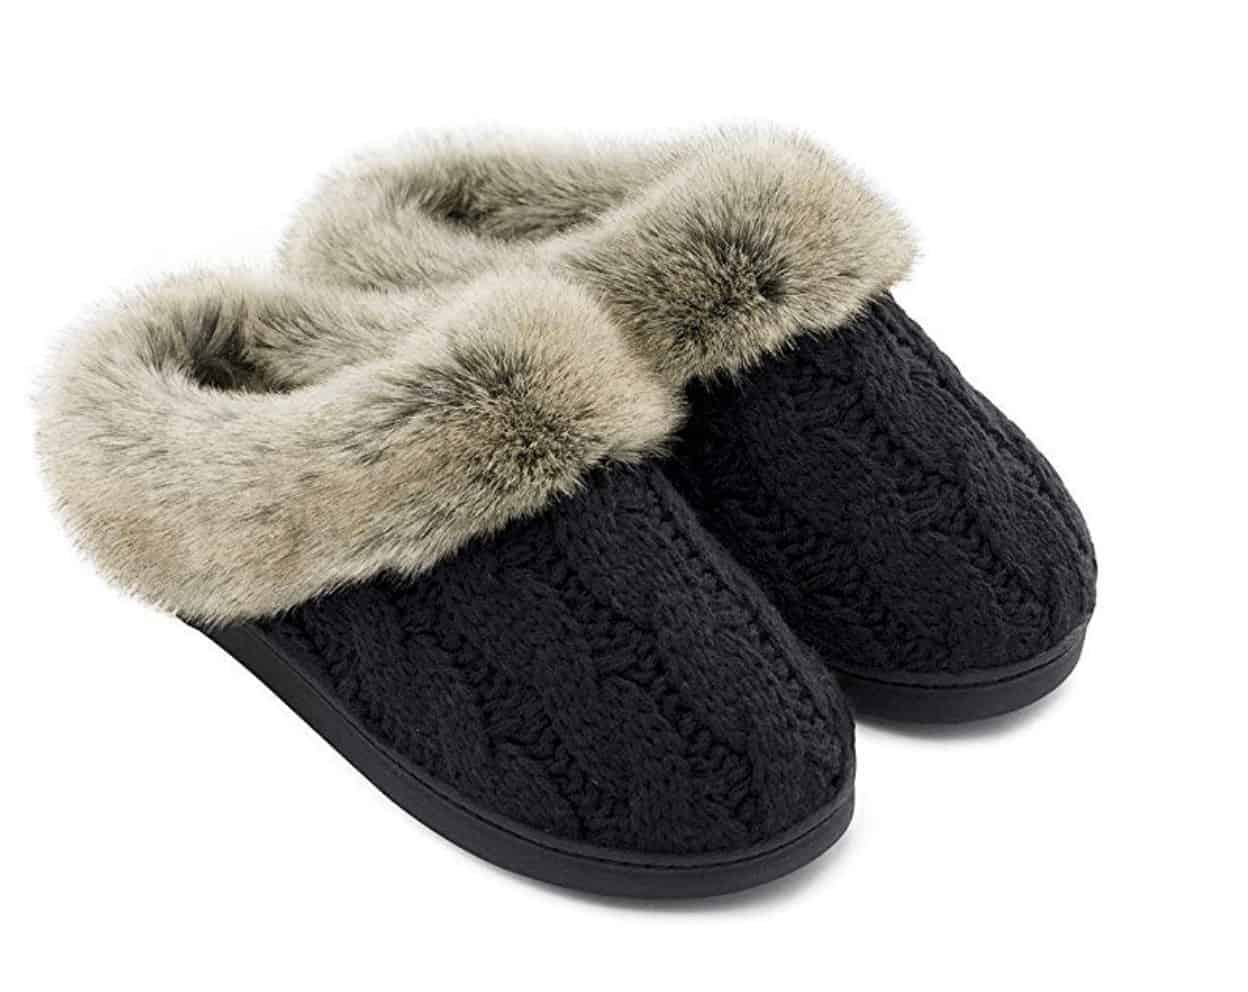 A pair of black, cable-knit slippers.